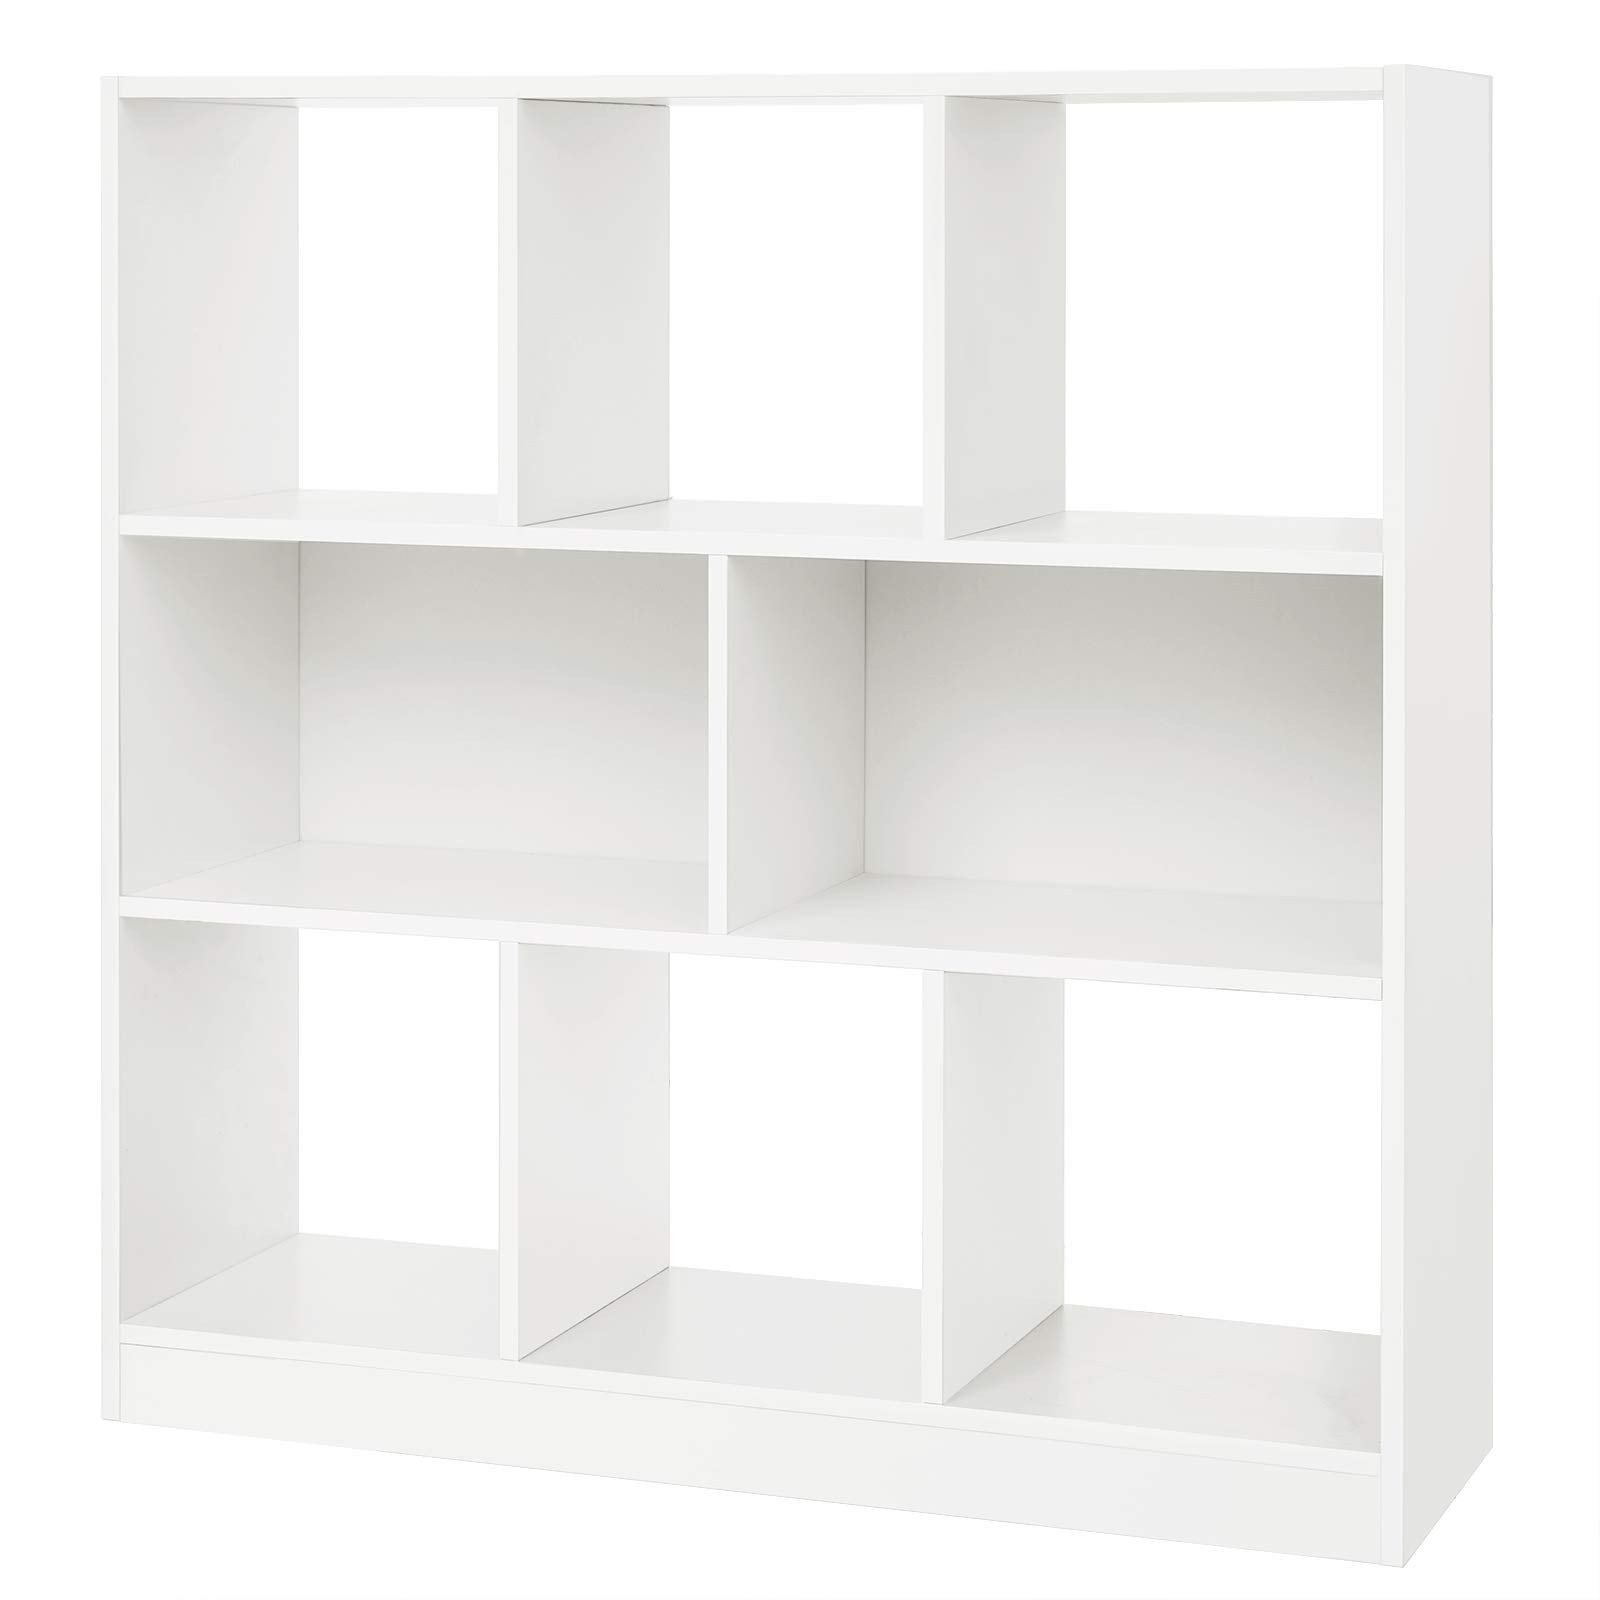 "SONGMICS Wooden Bookcase Open Cubes Shelves, Free Standing Bookshelf Storage Unit Display Cabinet, 33.9""L x 11"" x 37.2""H, White, ULBC52WT"